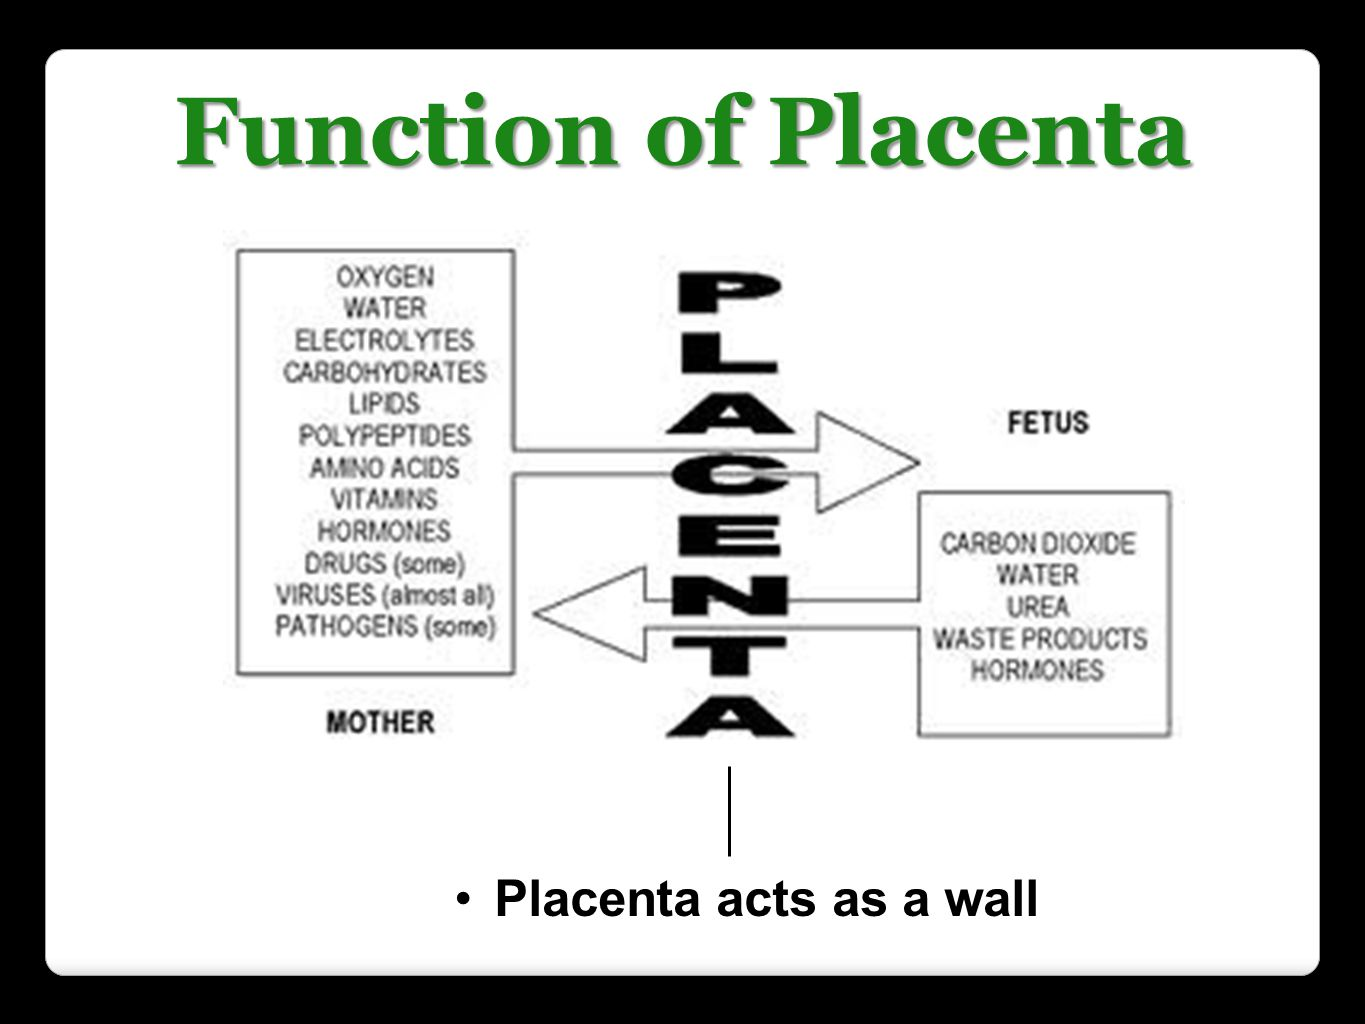 Placenta acts as a wall between mother s blood and fetus